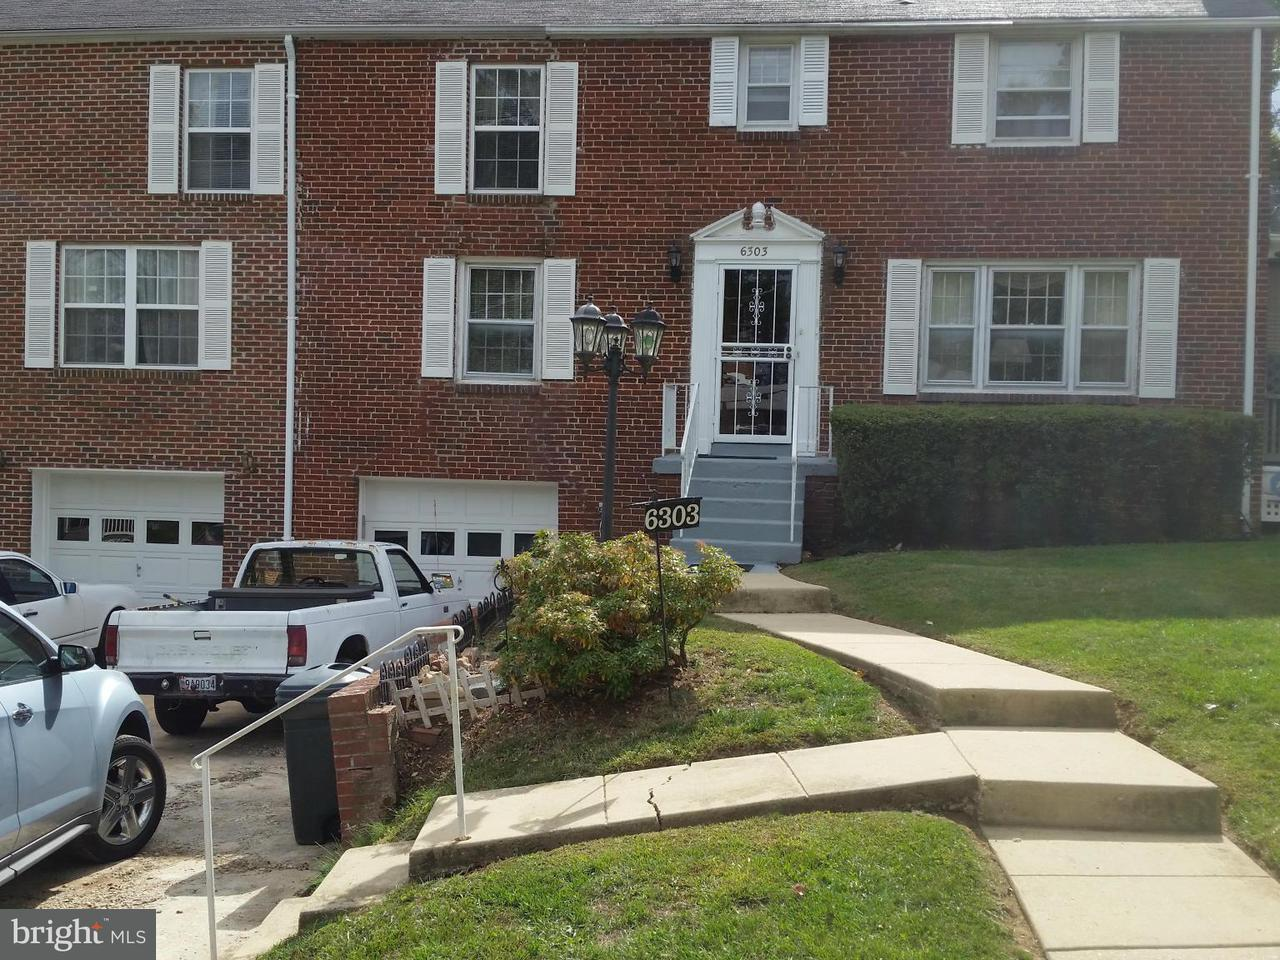 Vivienda unifamiliar por un Venta en 6303 Joslyn Place 6303 Joslyn Place Cheverly, Maryland 20785 Estados Unidos